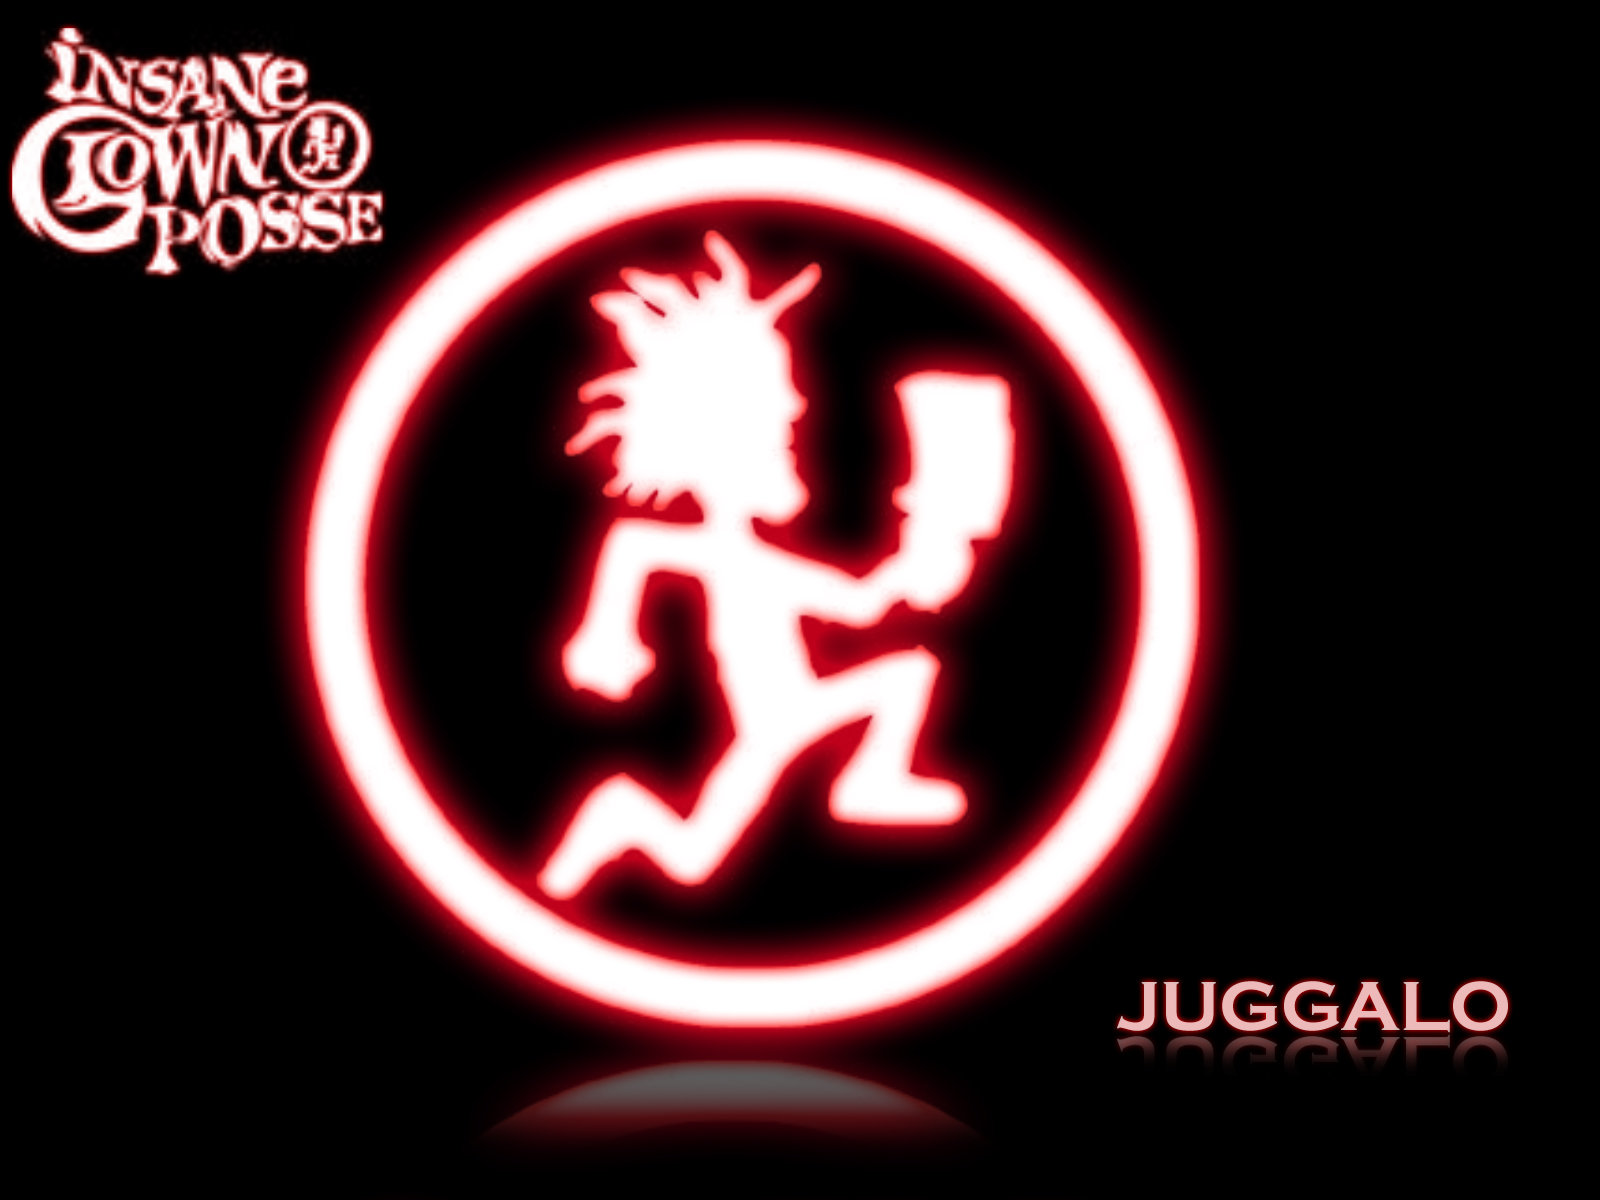 Psychopathic Records Family Wallpaper Juggalo for life by 1600x1200